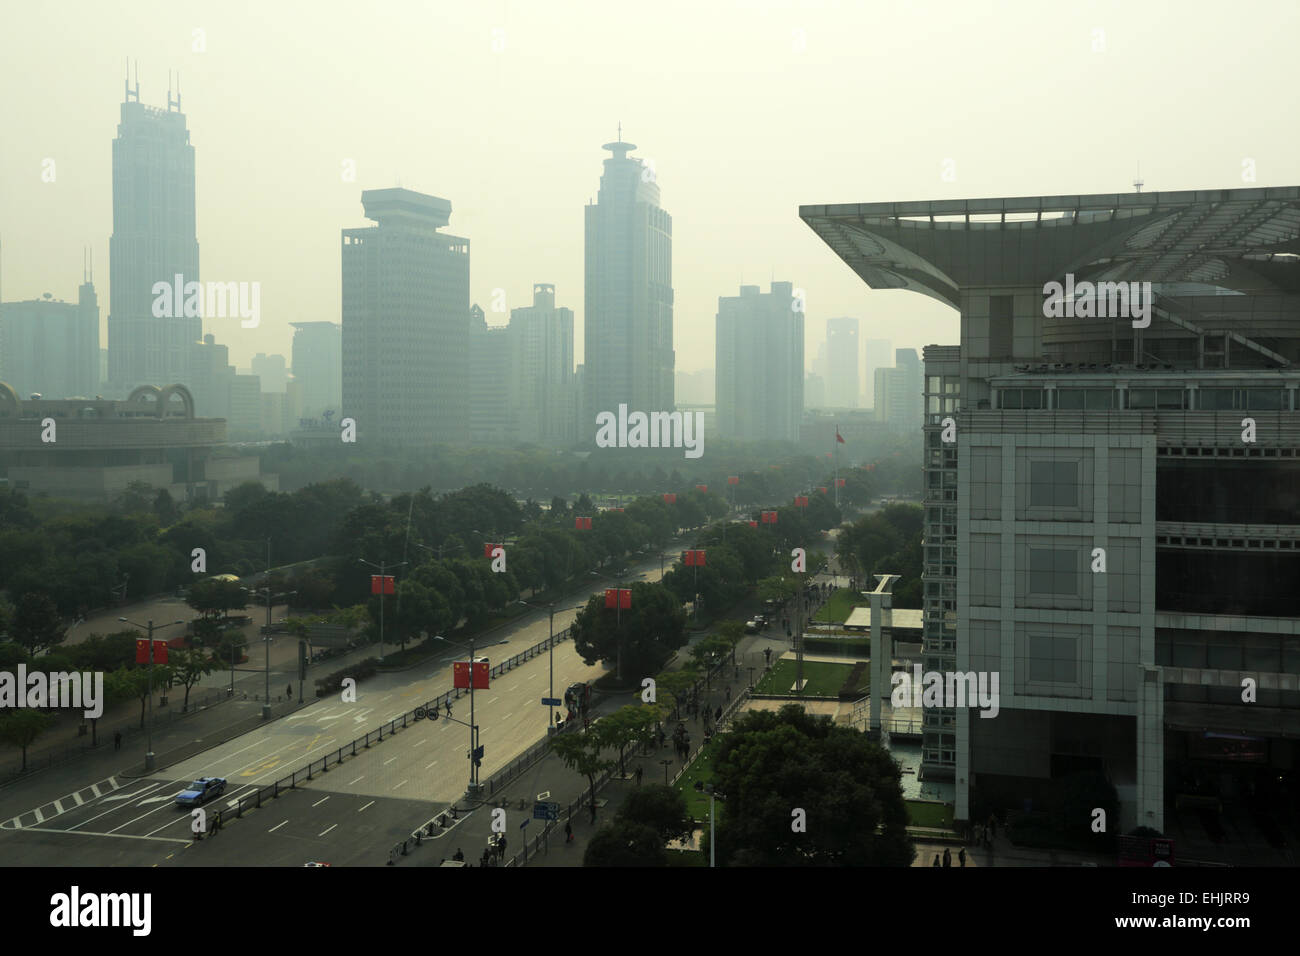 The view of People's Square in a smoggy day with Shanghai Urban Planning Exhibition Center in foreground. Shanghai, Stock Photo